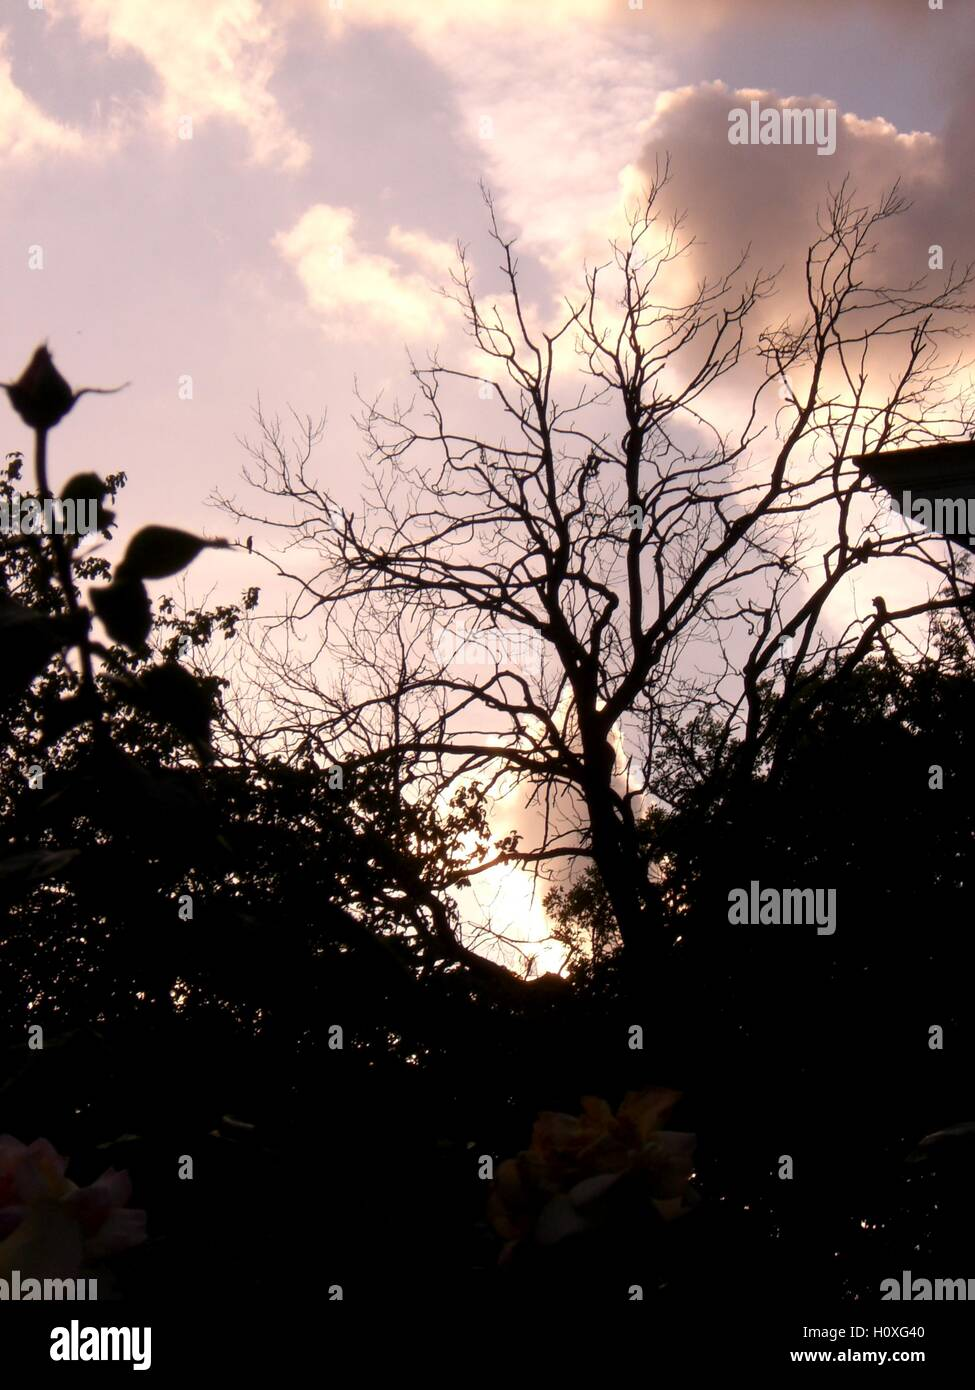 Looking up at a cloudy sky through leafless tree, rose in the foreground, silhouette - Stock Image